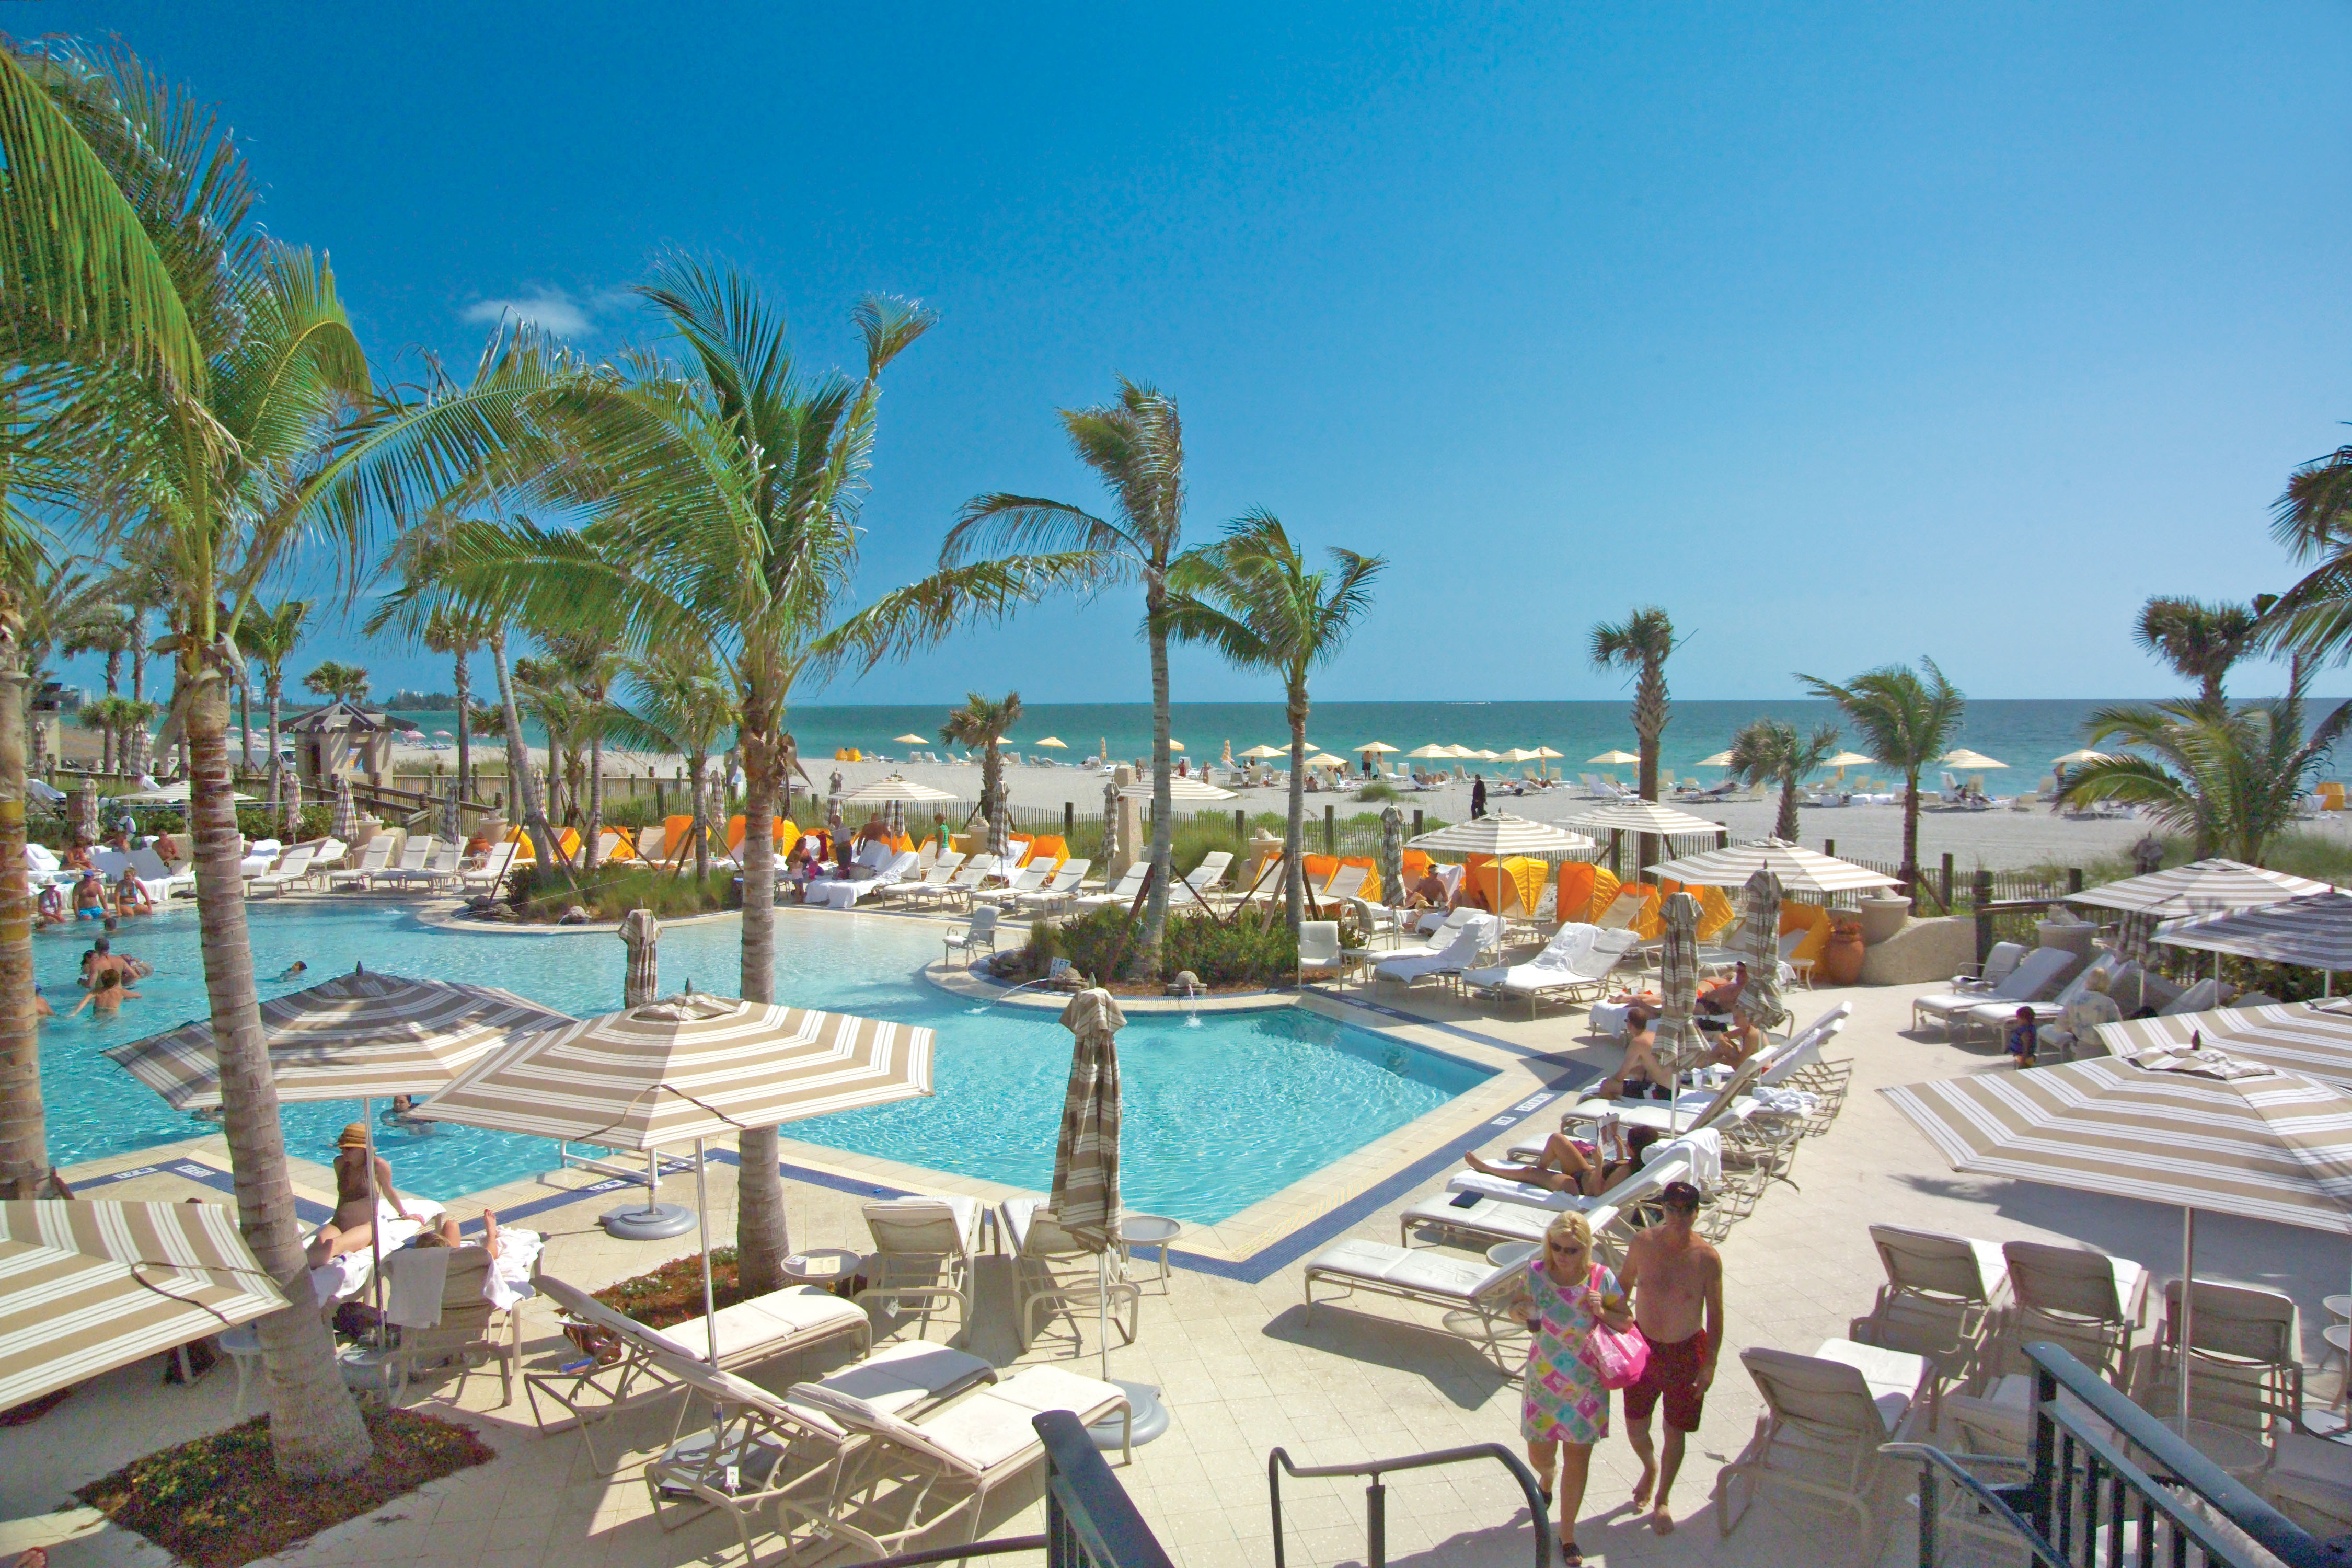 The Ritz Carlton Members Club Grants You Access To Private Beach